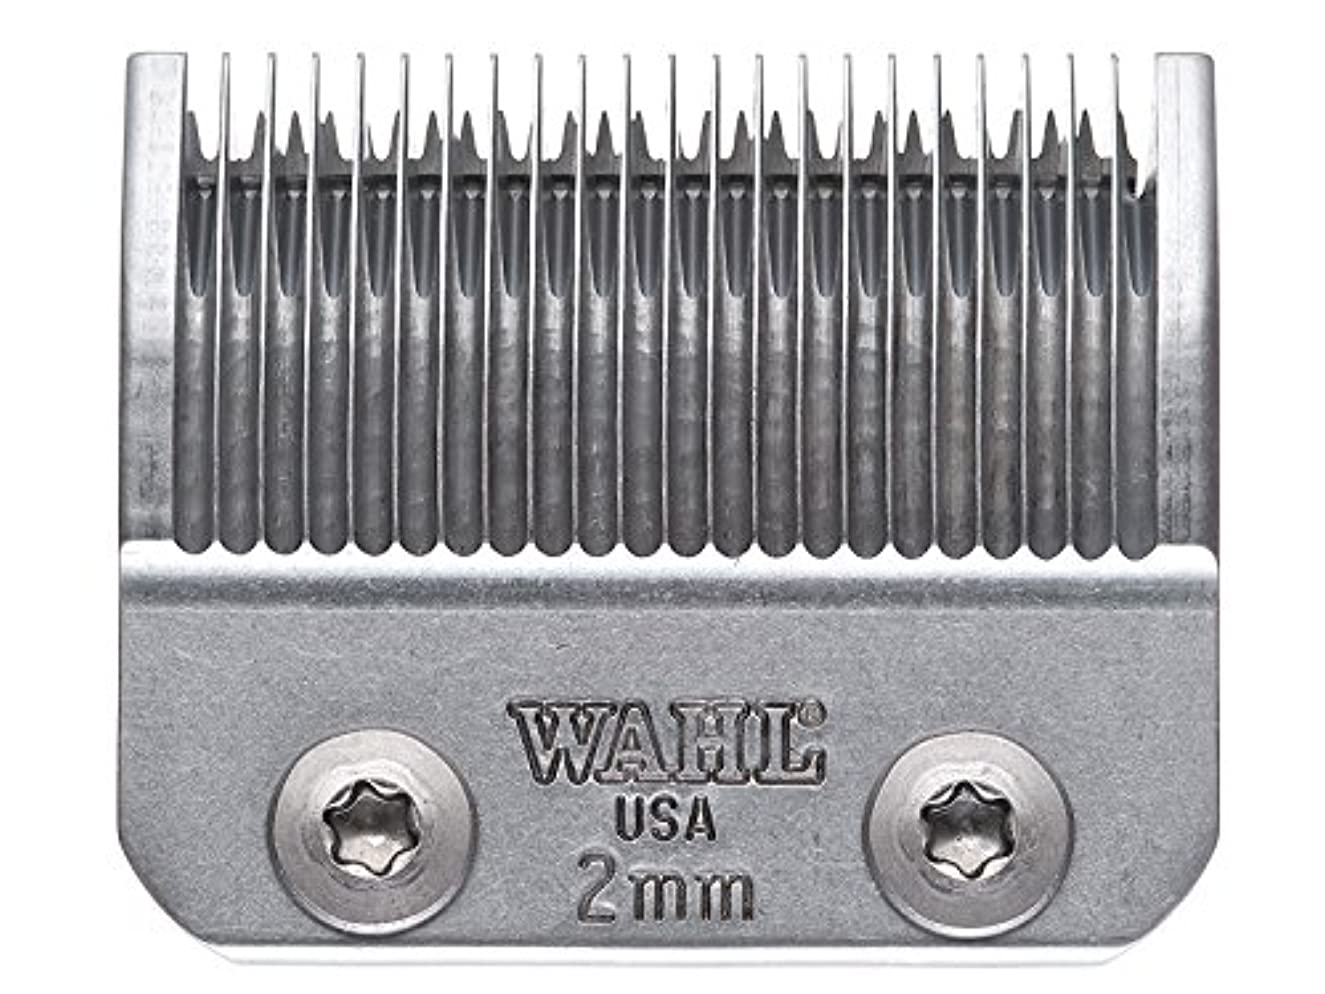 WAHL アンバサダー 専用替刃 2mm